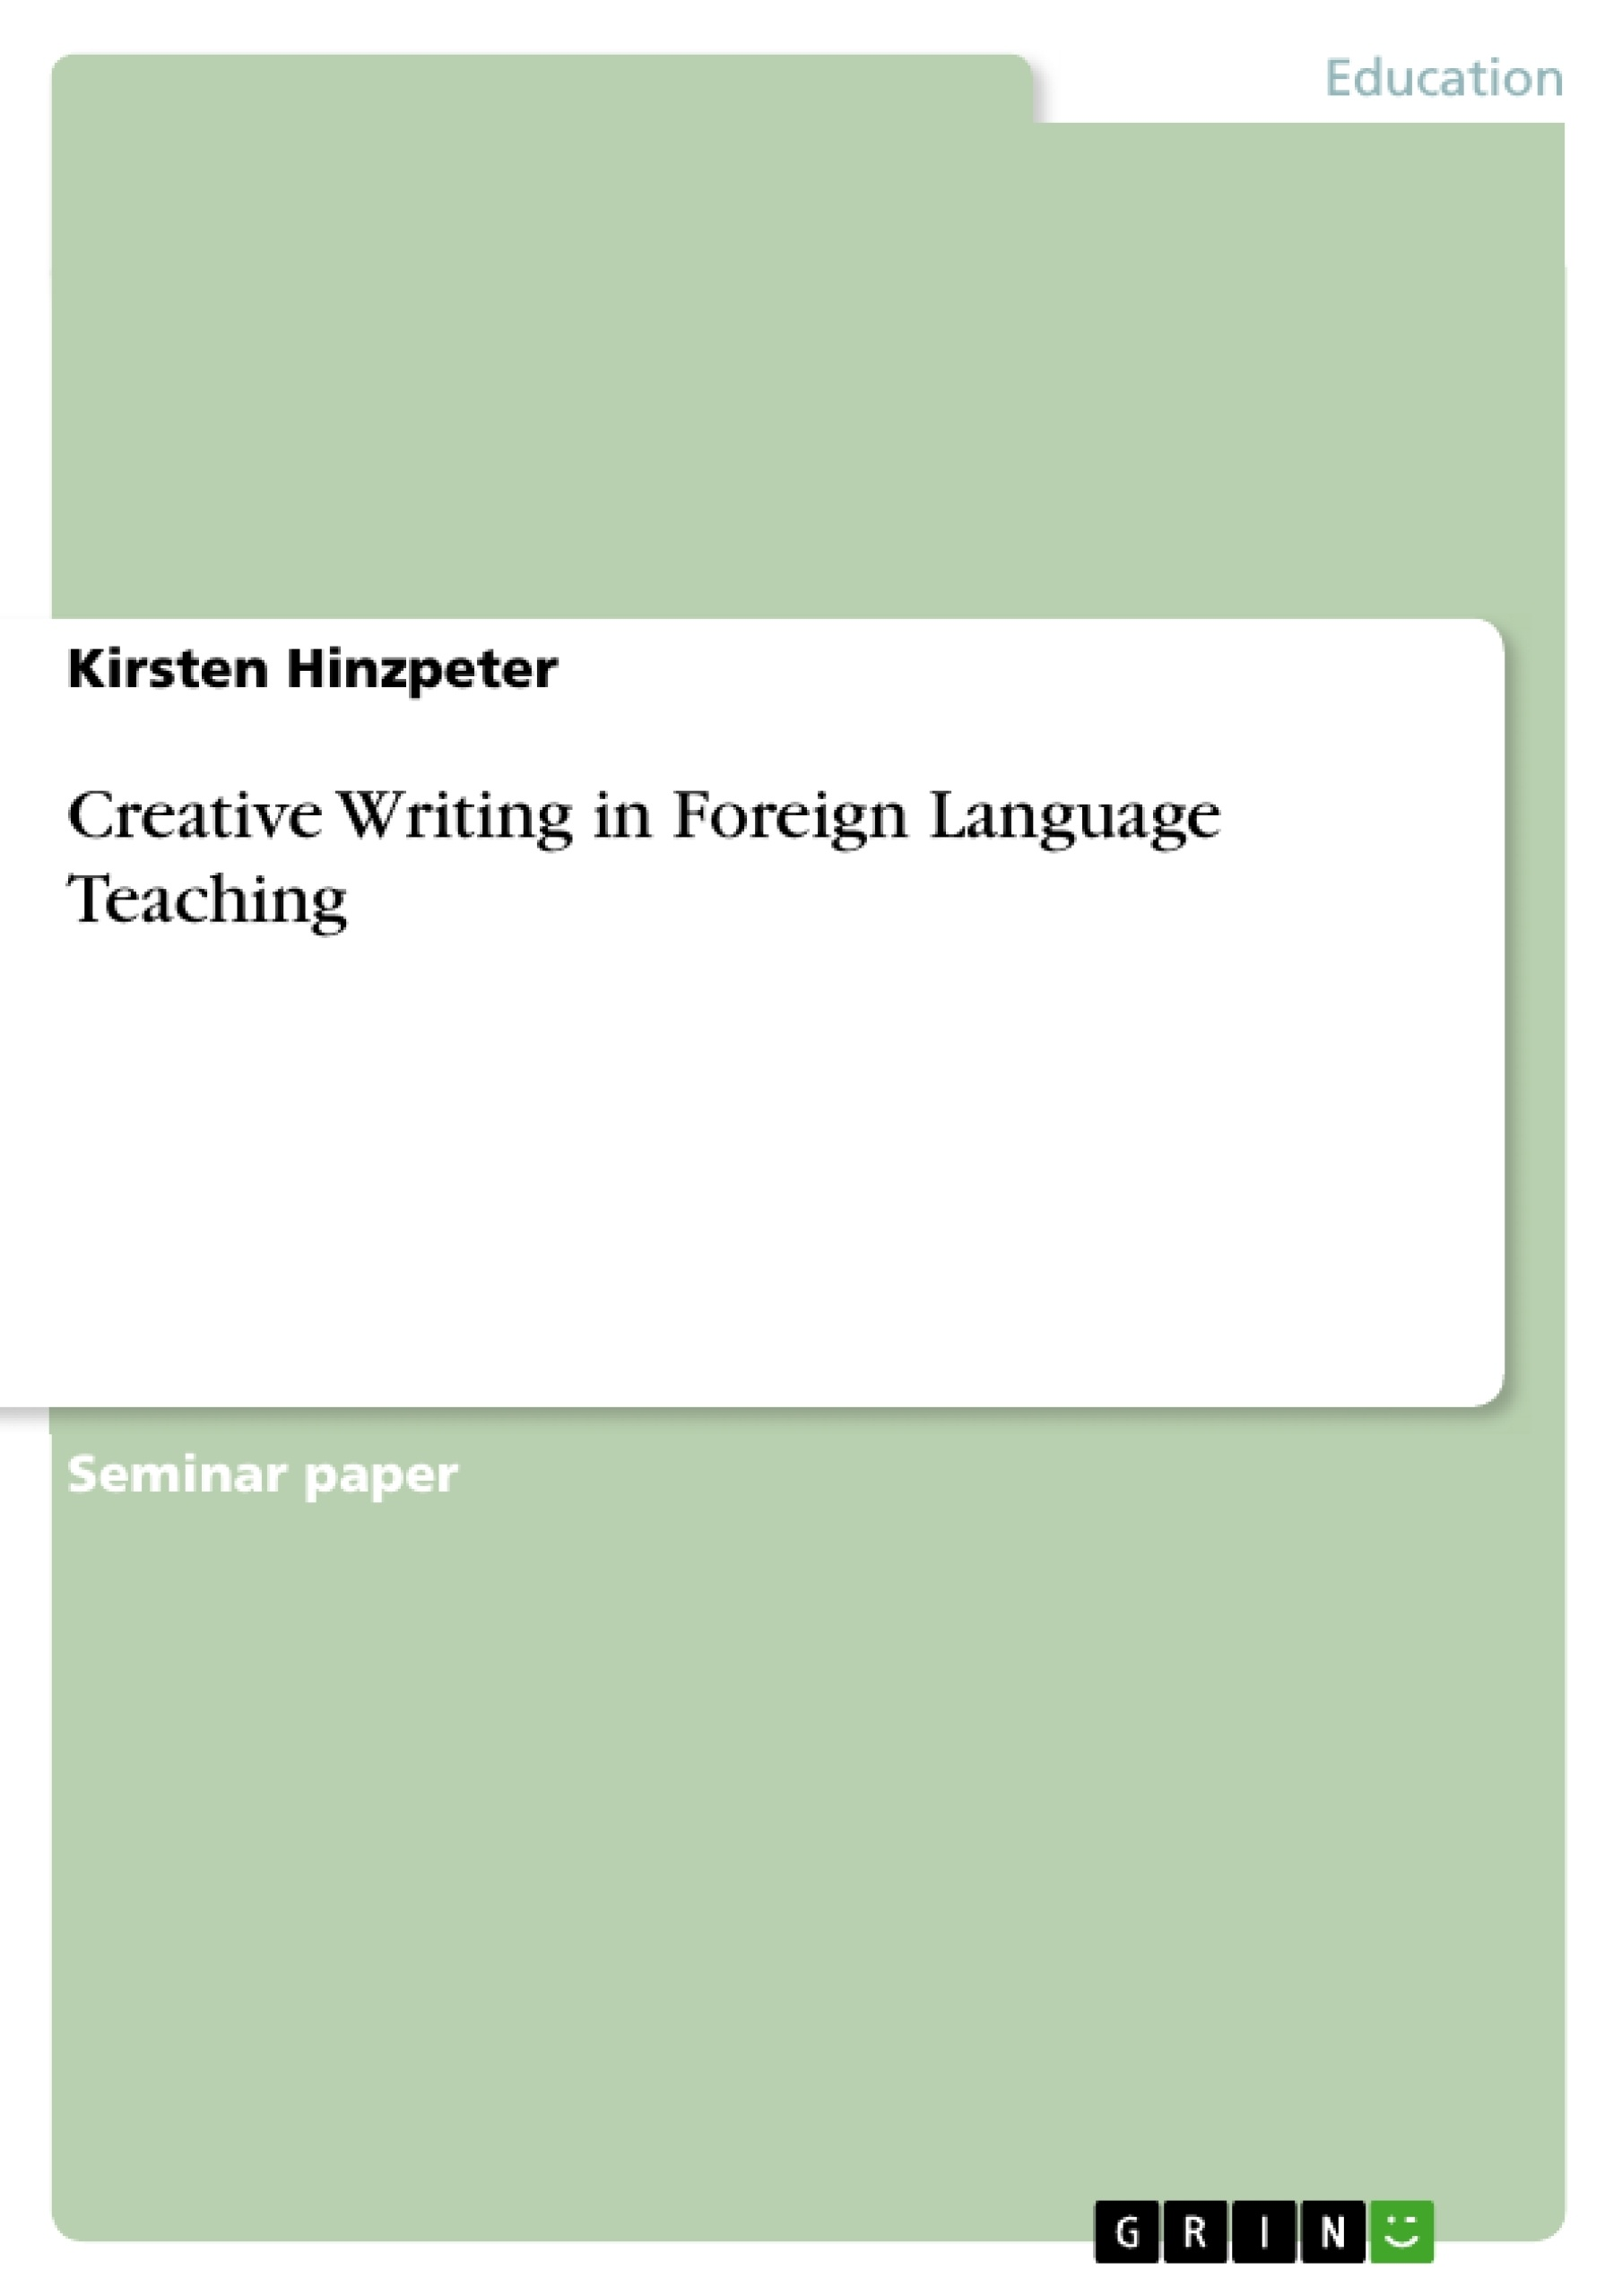 Title: Creative Writing in Foreign Language Teaching